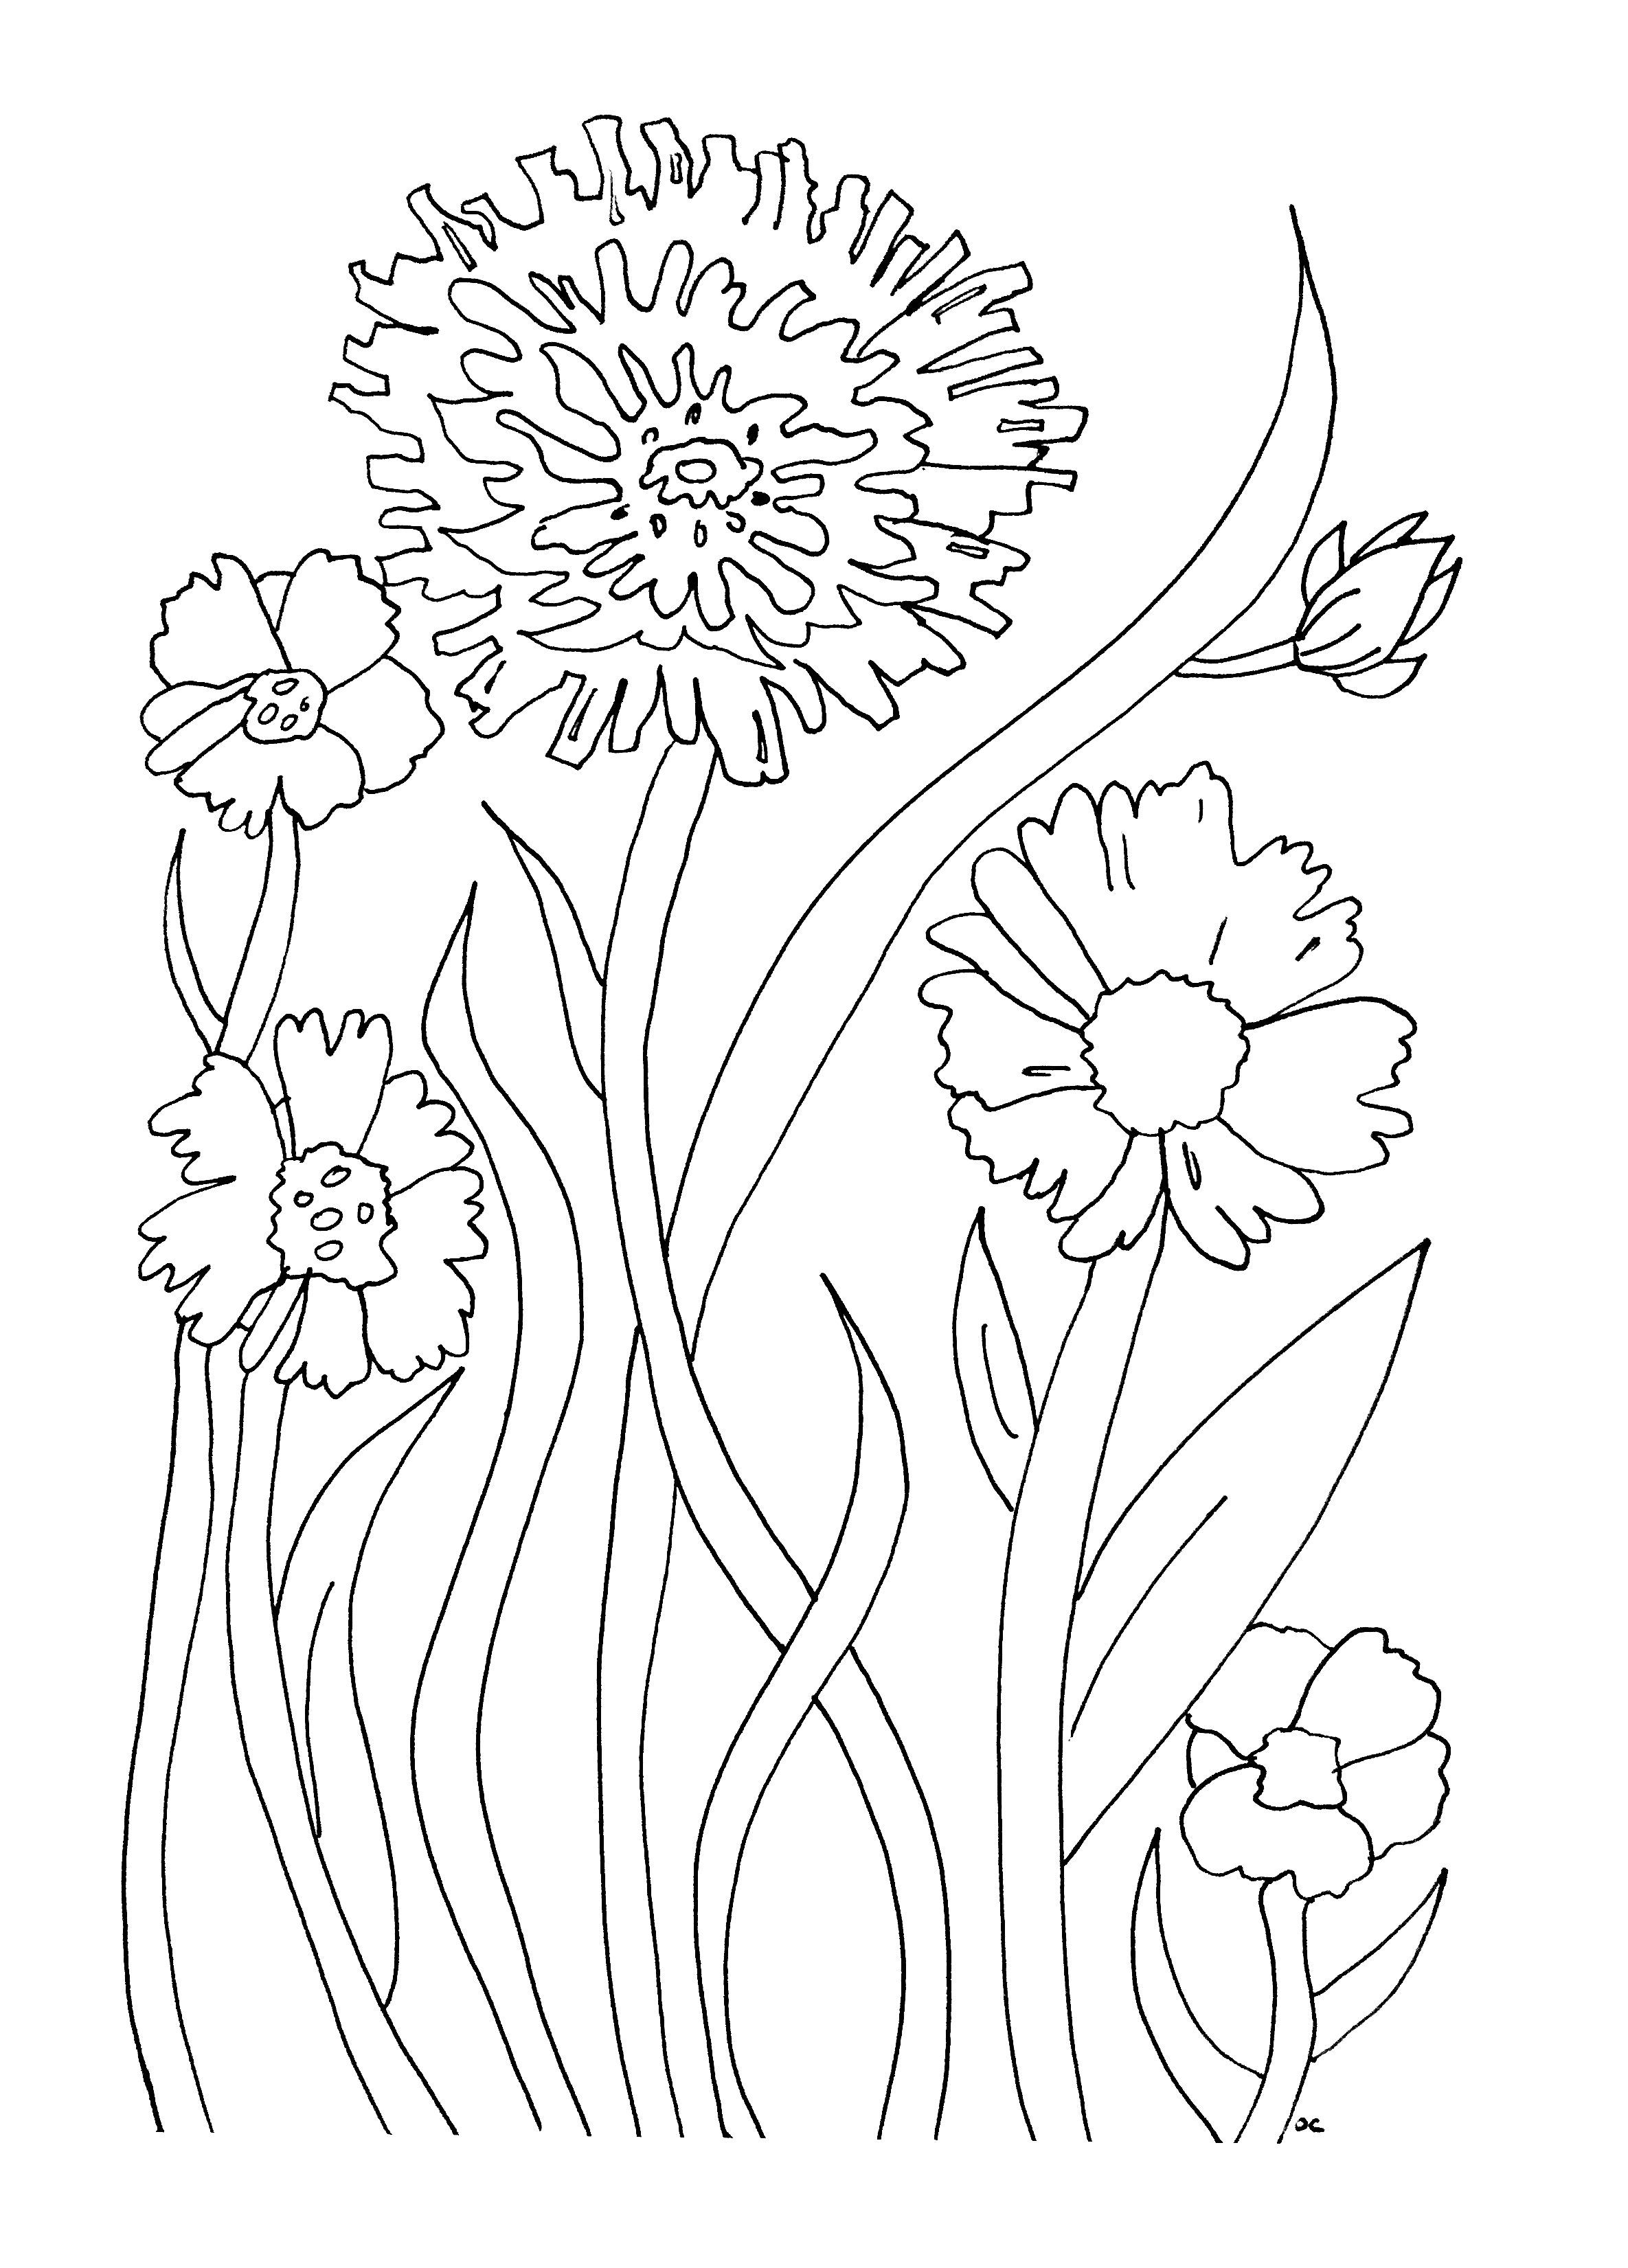 Flowers And Vegetation Coloring Pages For Adults Coloring Simple Flowers Printable Flower Coloring Pages Flower Coloring Pages Easy Coloring Pages